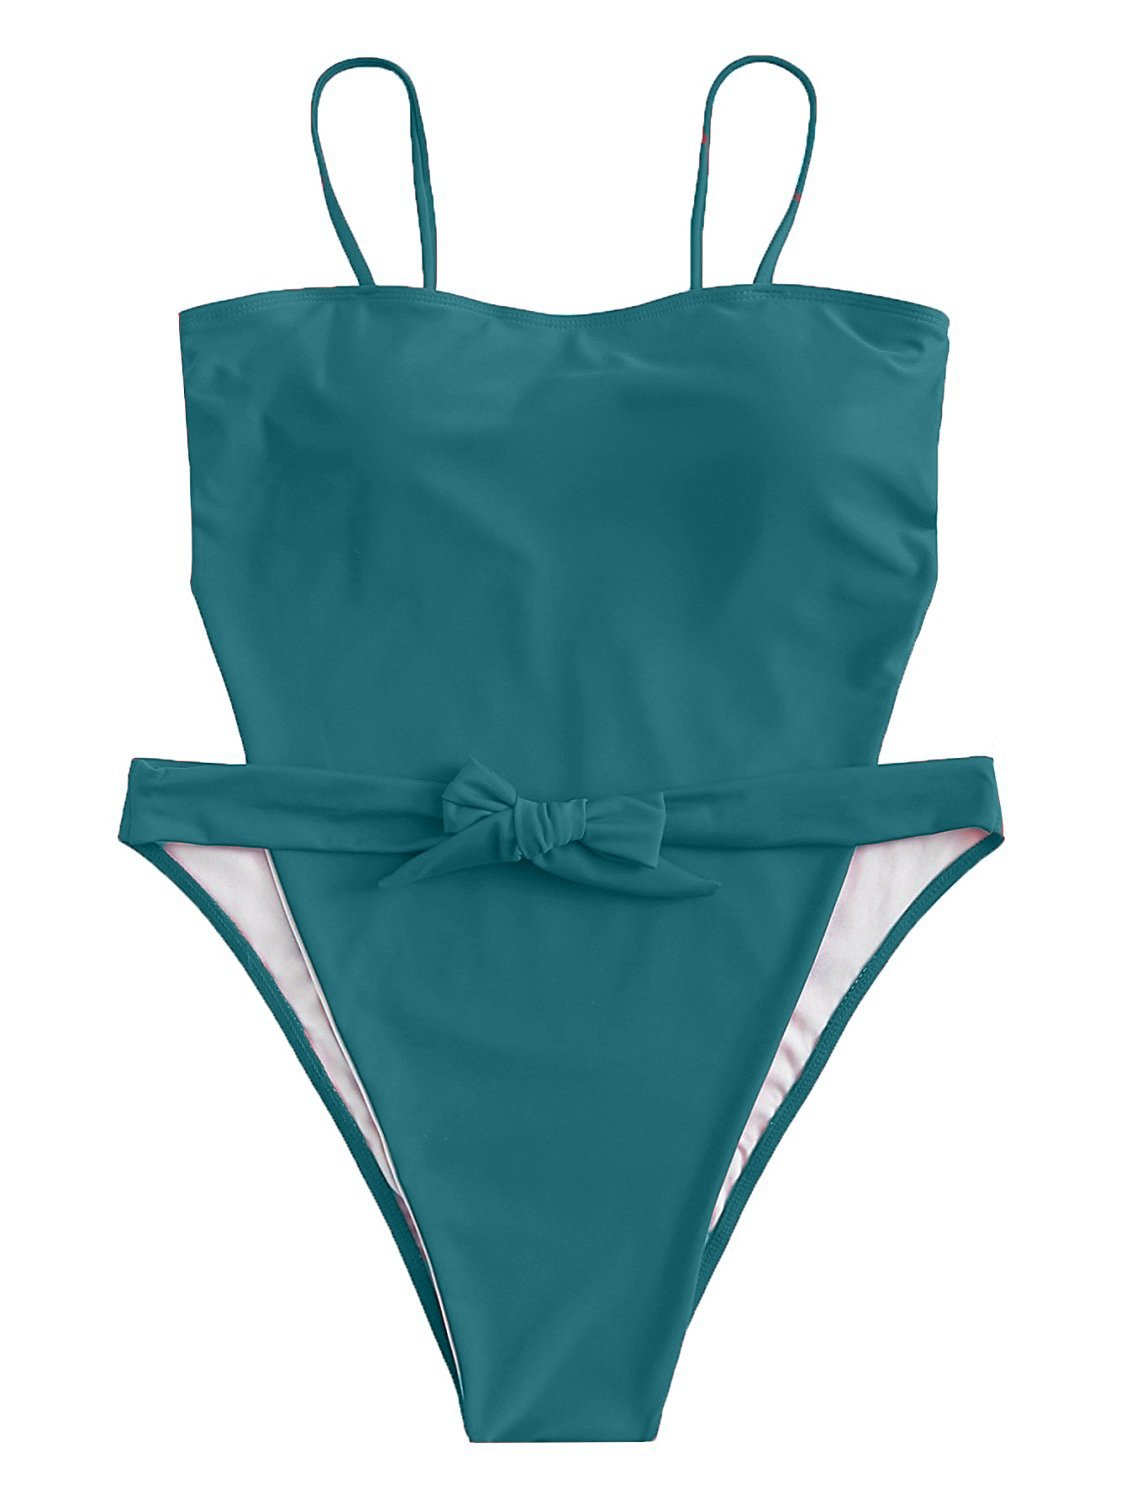 ioiom Women Sexy Spaghetti Strap Self Tie Front High Waist Cut One Piece Swimsuit Green M by ioiom (Image #6)